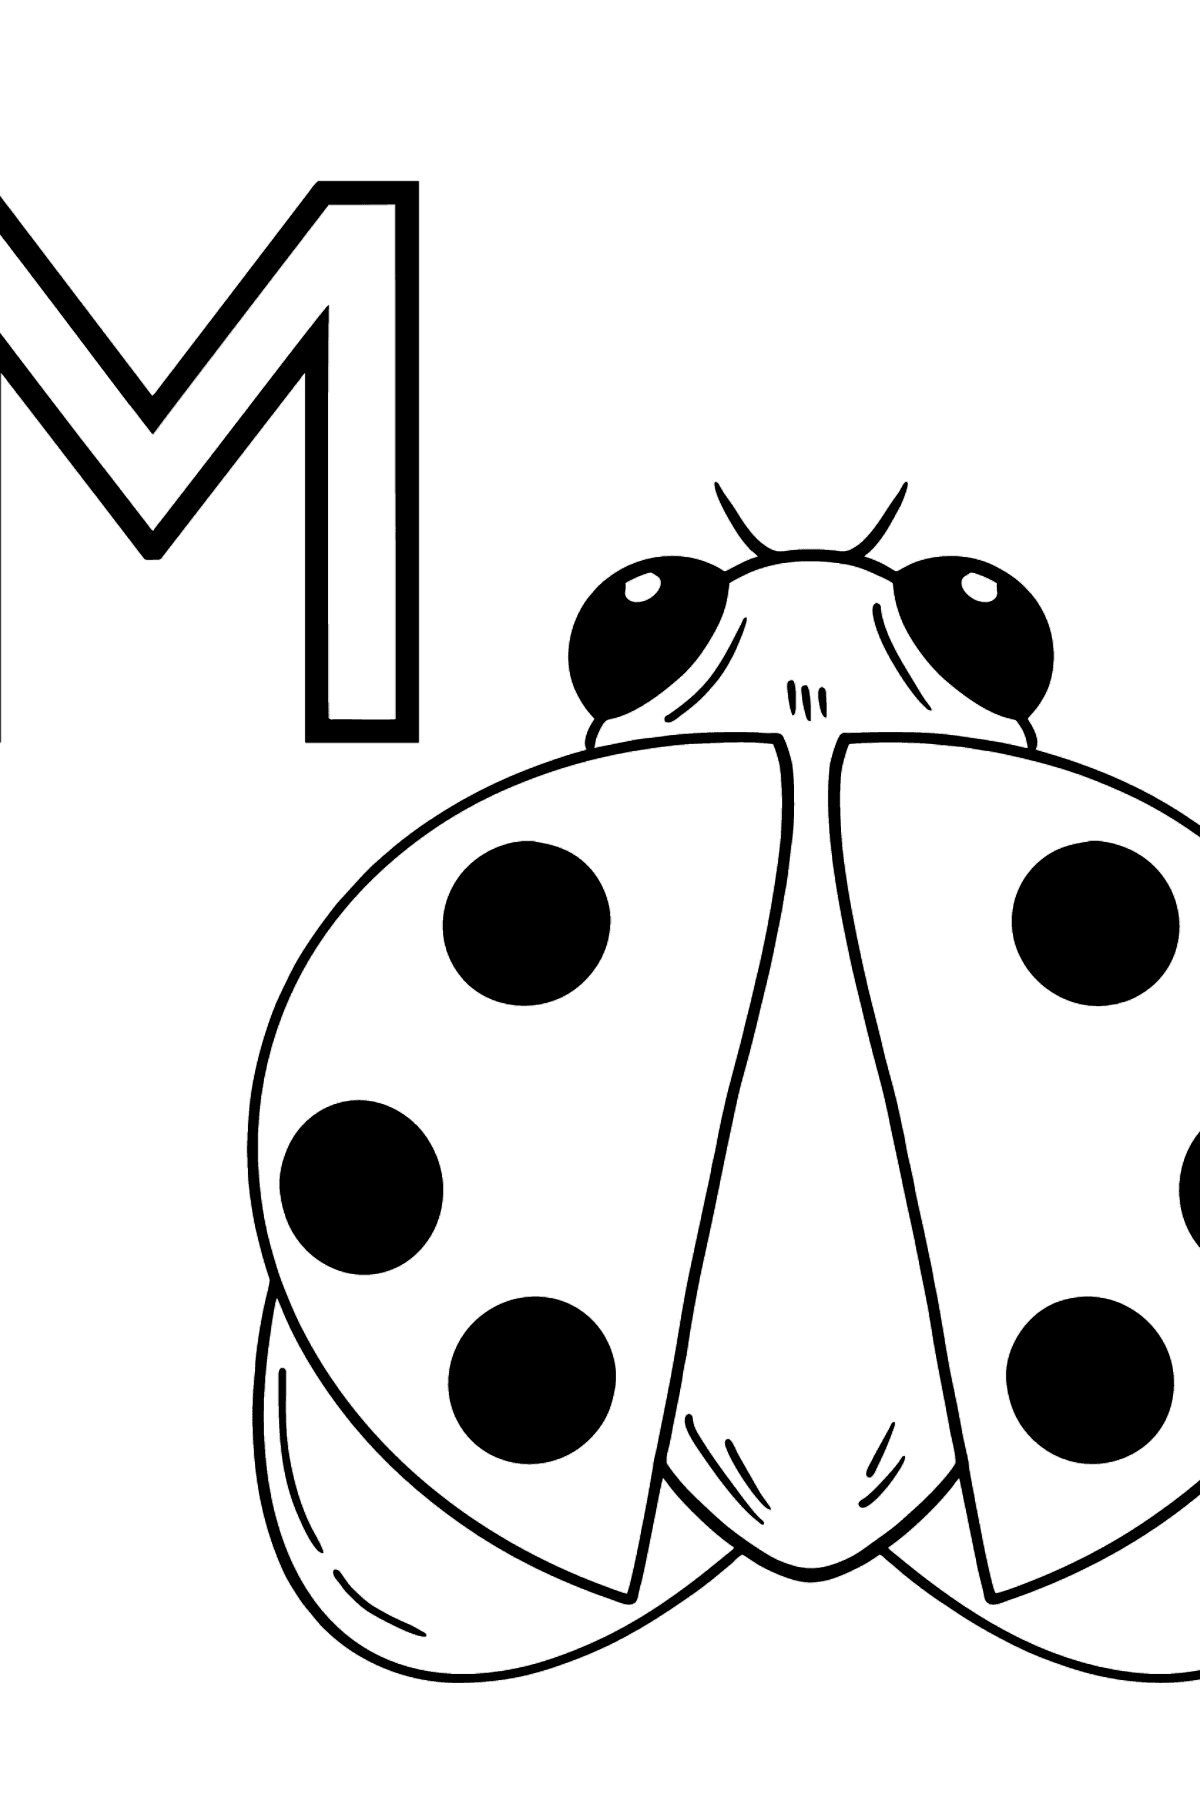 German Letter M coloring pages - MARIENKÄFER - Coloring Pages for Kids